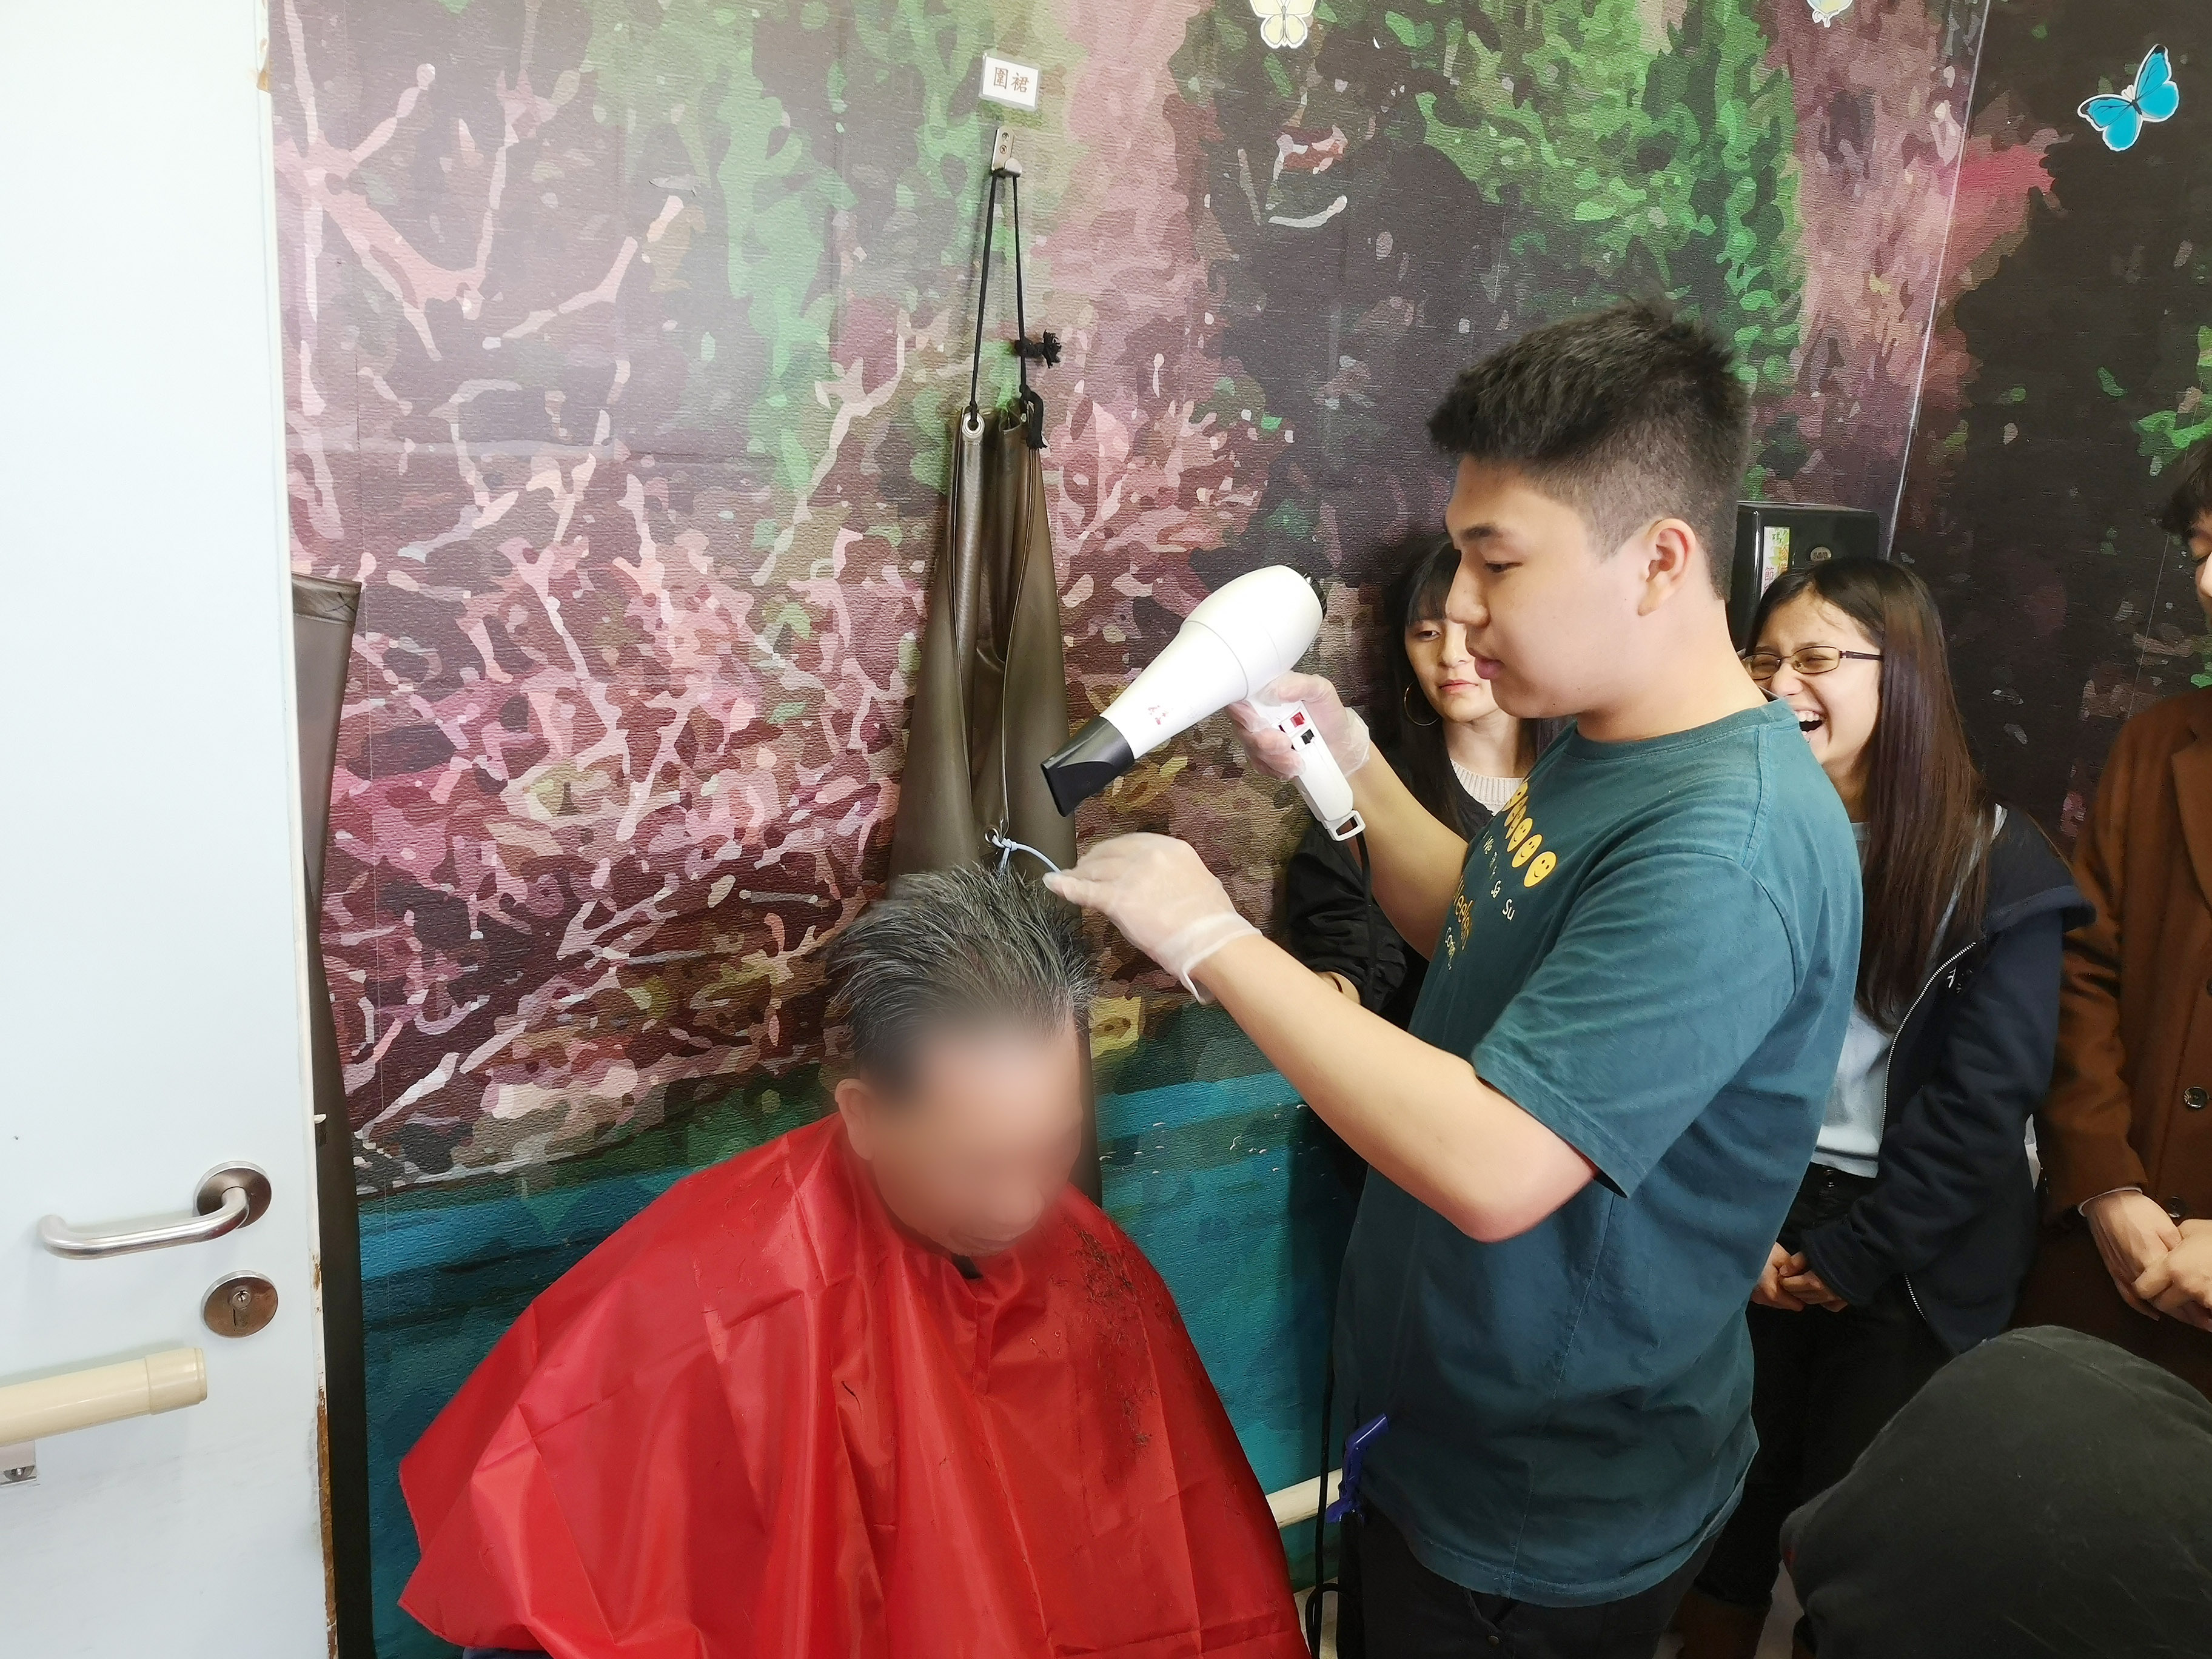 HPSHCC Community Barber Service Team's First Service - Photo - 9